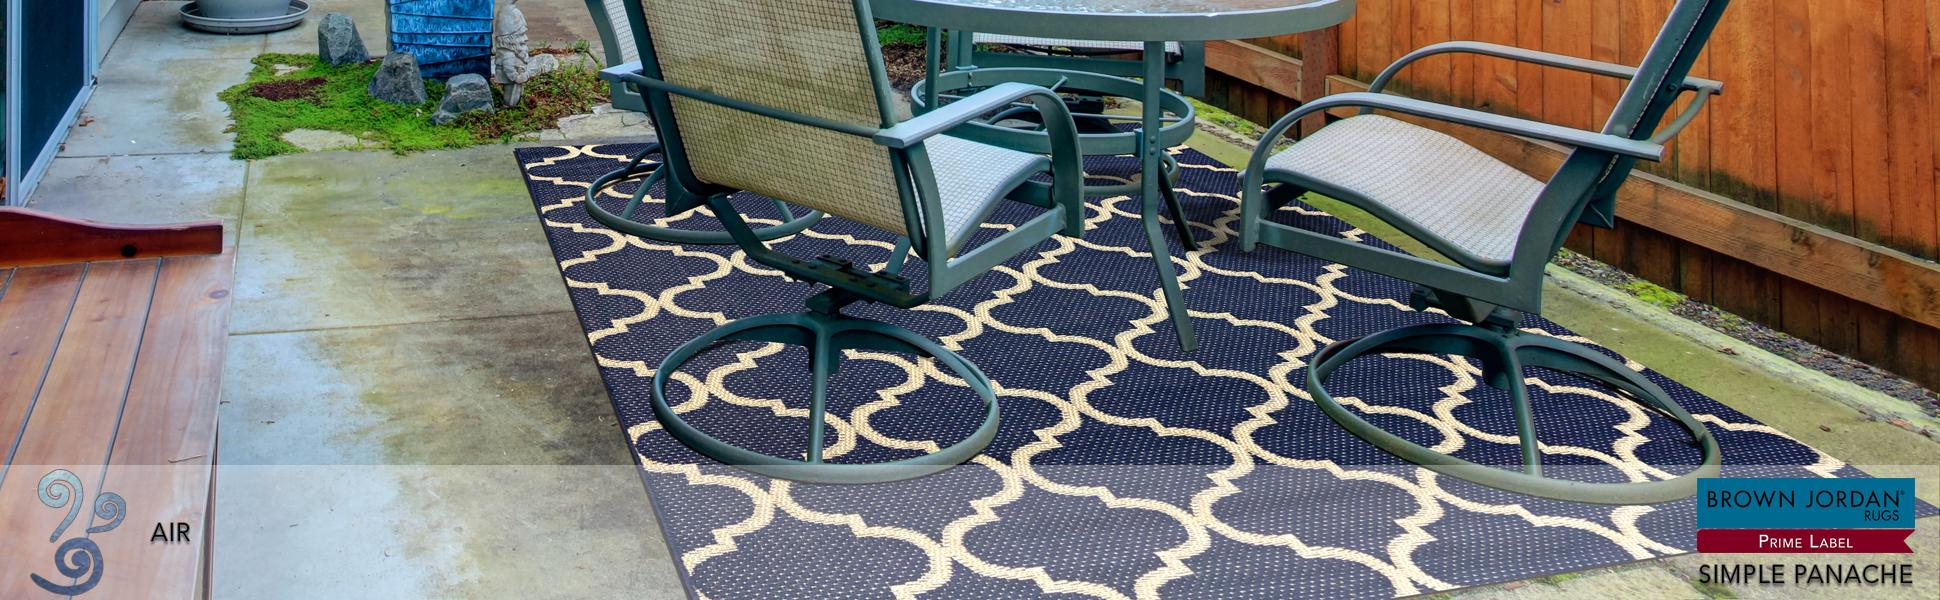 Brown Jordan Prime Label Outdoor Furniture Rug 8x10 Seneca Collection Blue Sisal